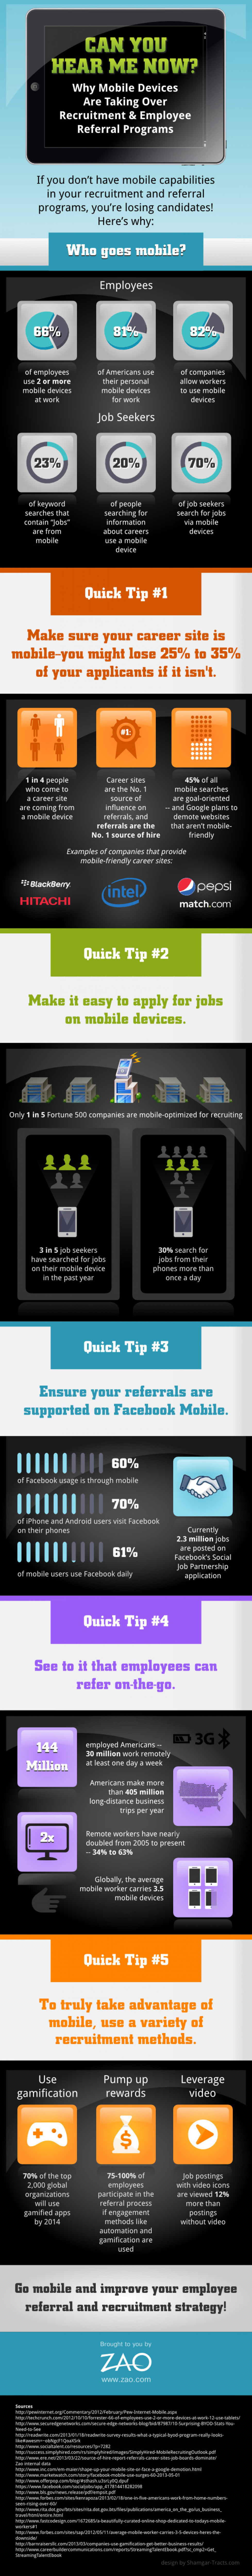 How to Optimize Recruitment For Mobile Workforces Infographic